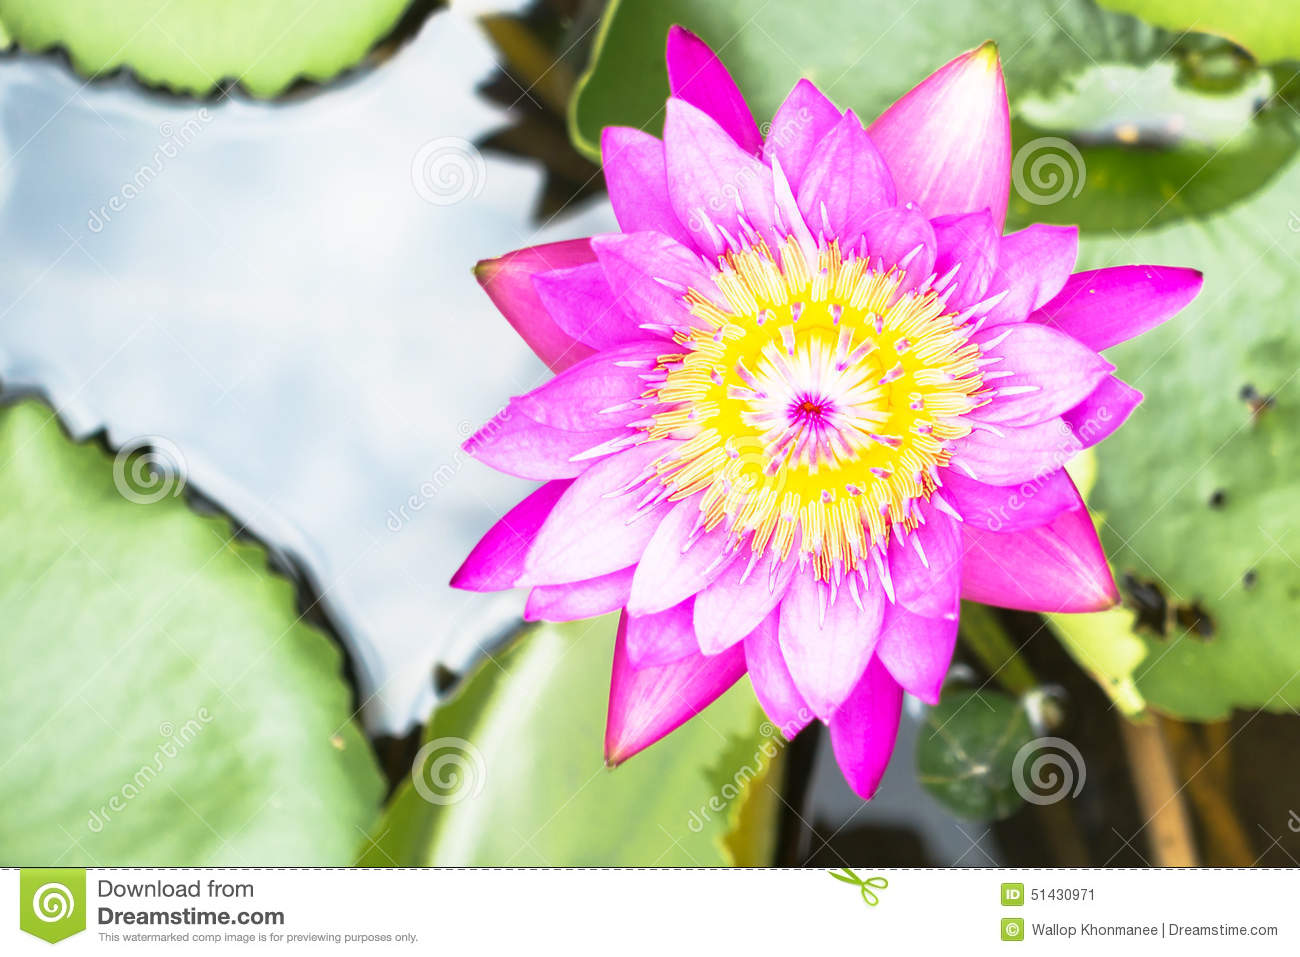 Lotus is water lily in the garden stock image image of nature download lotus is water lily in the garden stock image image of nature herb mightylinksfo